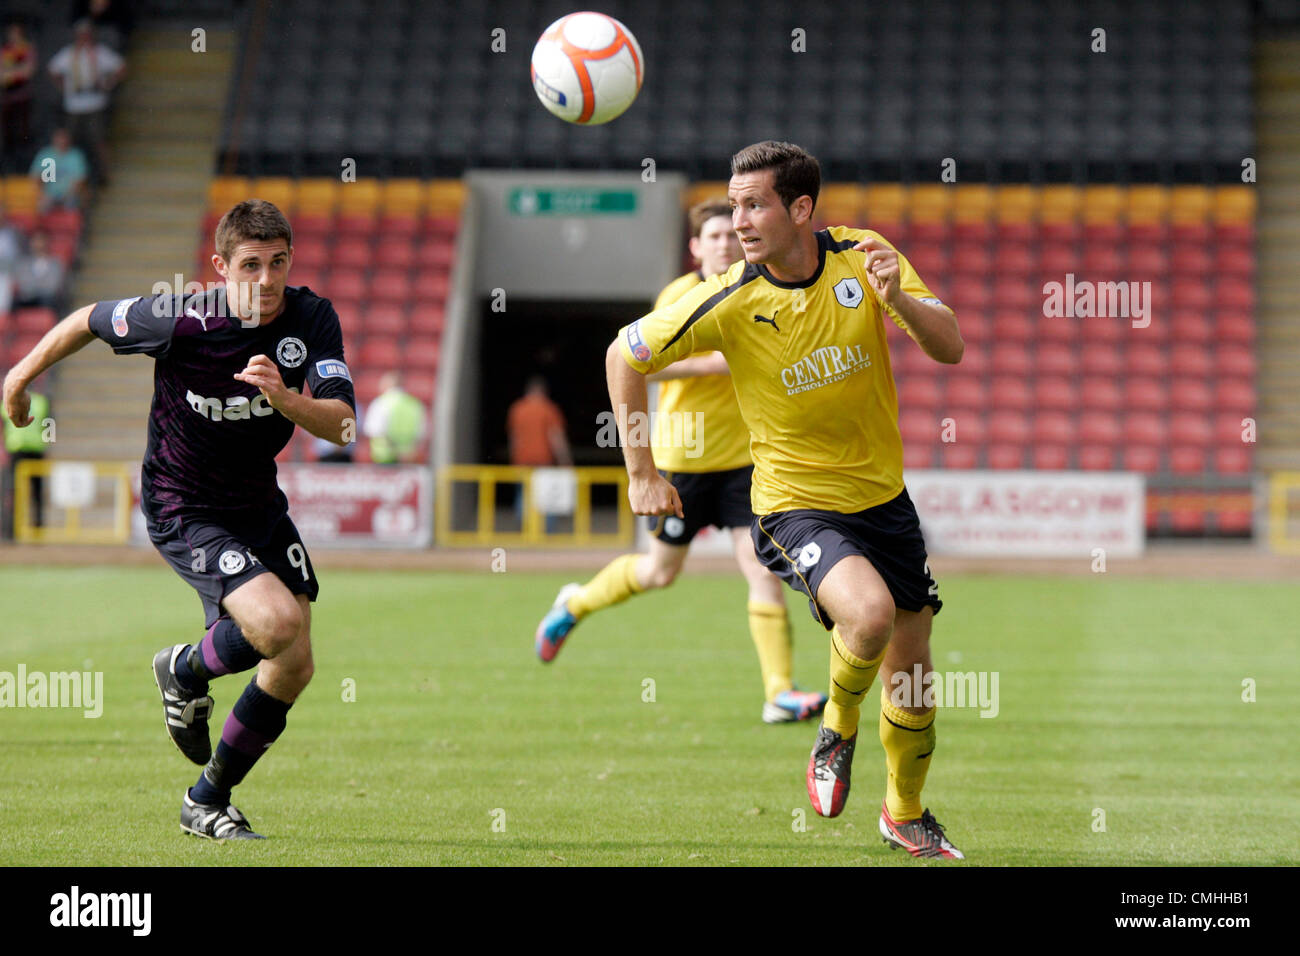 11th Aug 2012. 11.08.2012 Glasgow, Scotland. 9 Kris Doolan and 3 Stephen Kingsley in action during the Scottish - Stock Image